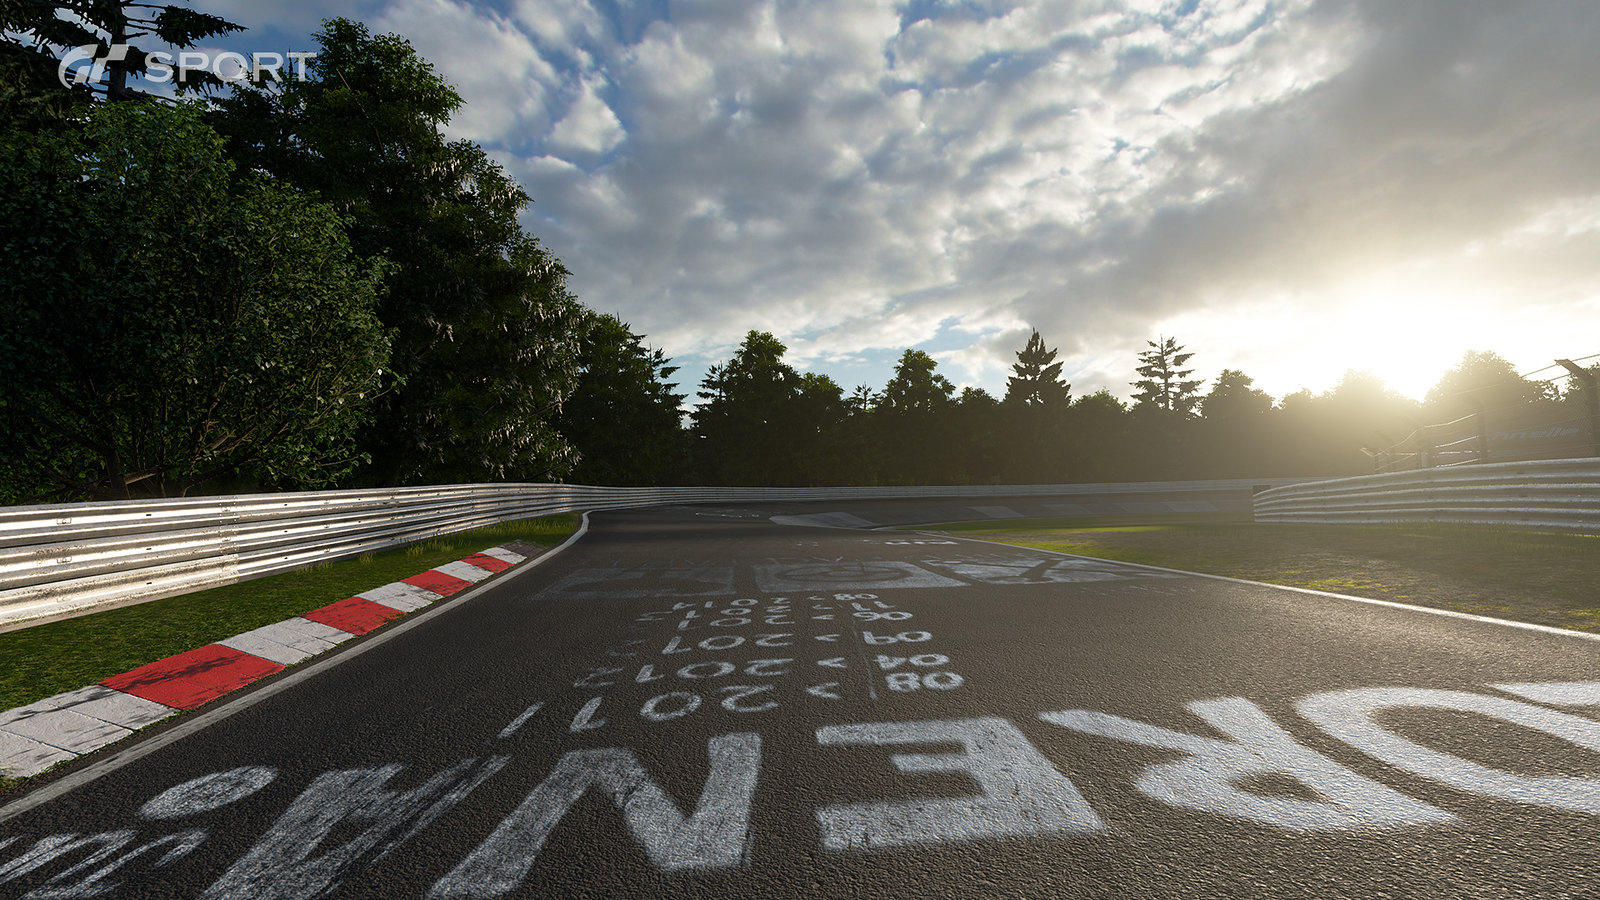 Video Conference Backgrounds - Gran Turismo